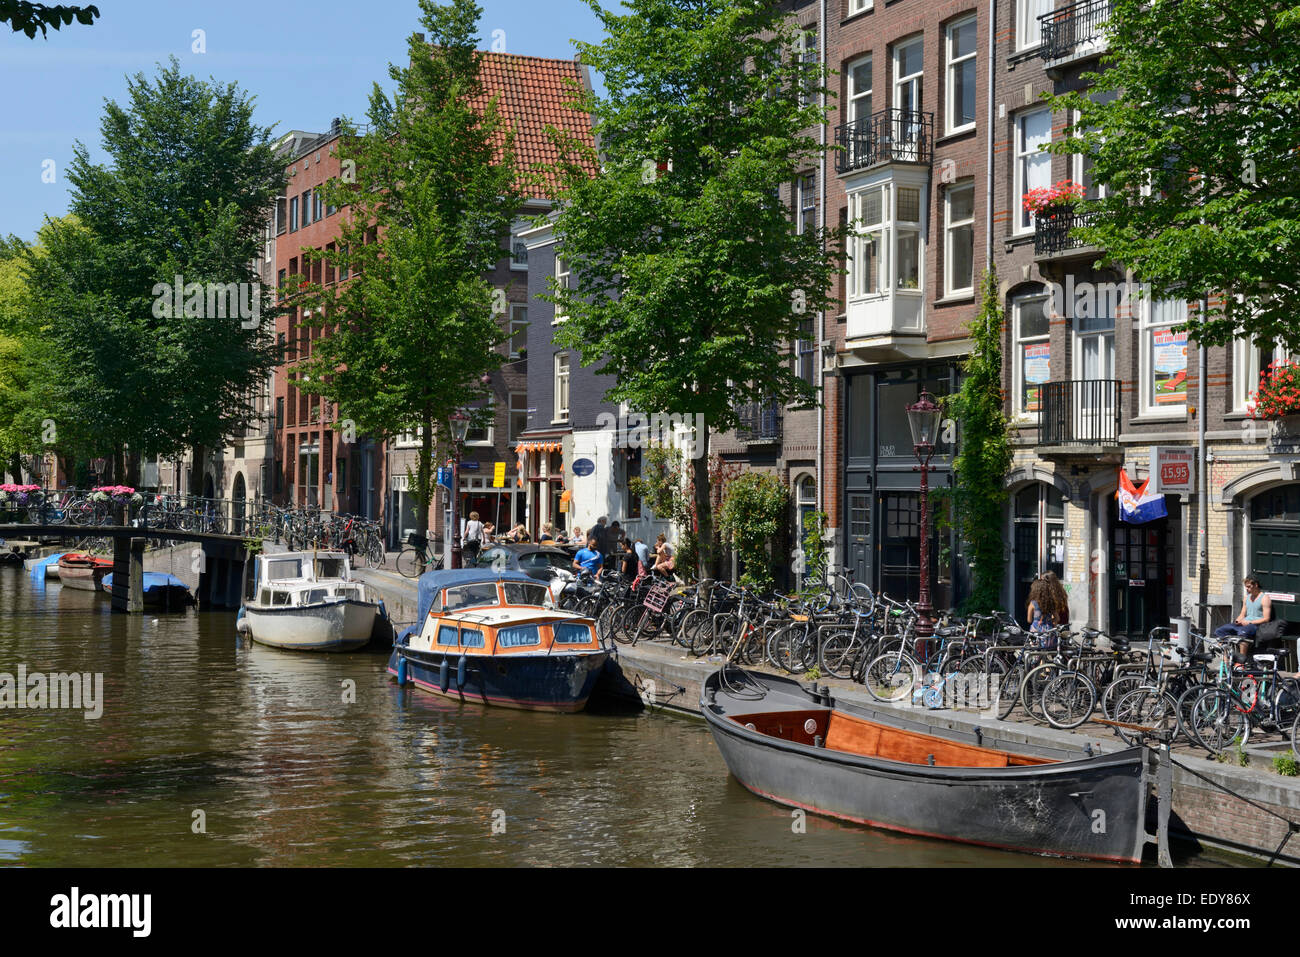 Canalside buildings, Prinsengracht, Amsterdam, North Holland, Netherlands, Europe - Stock Image